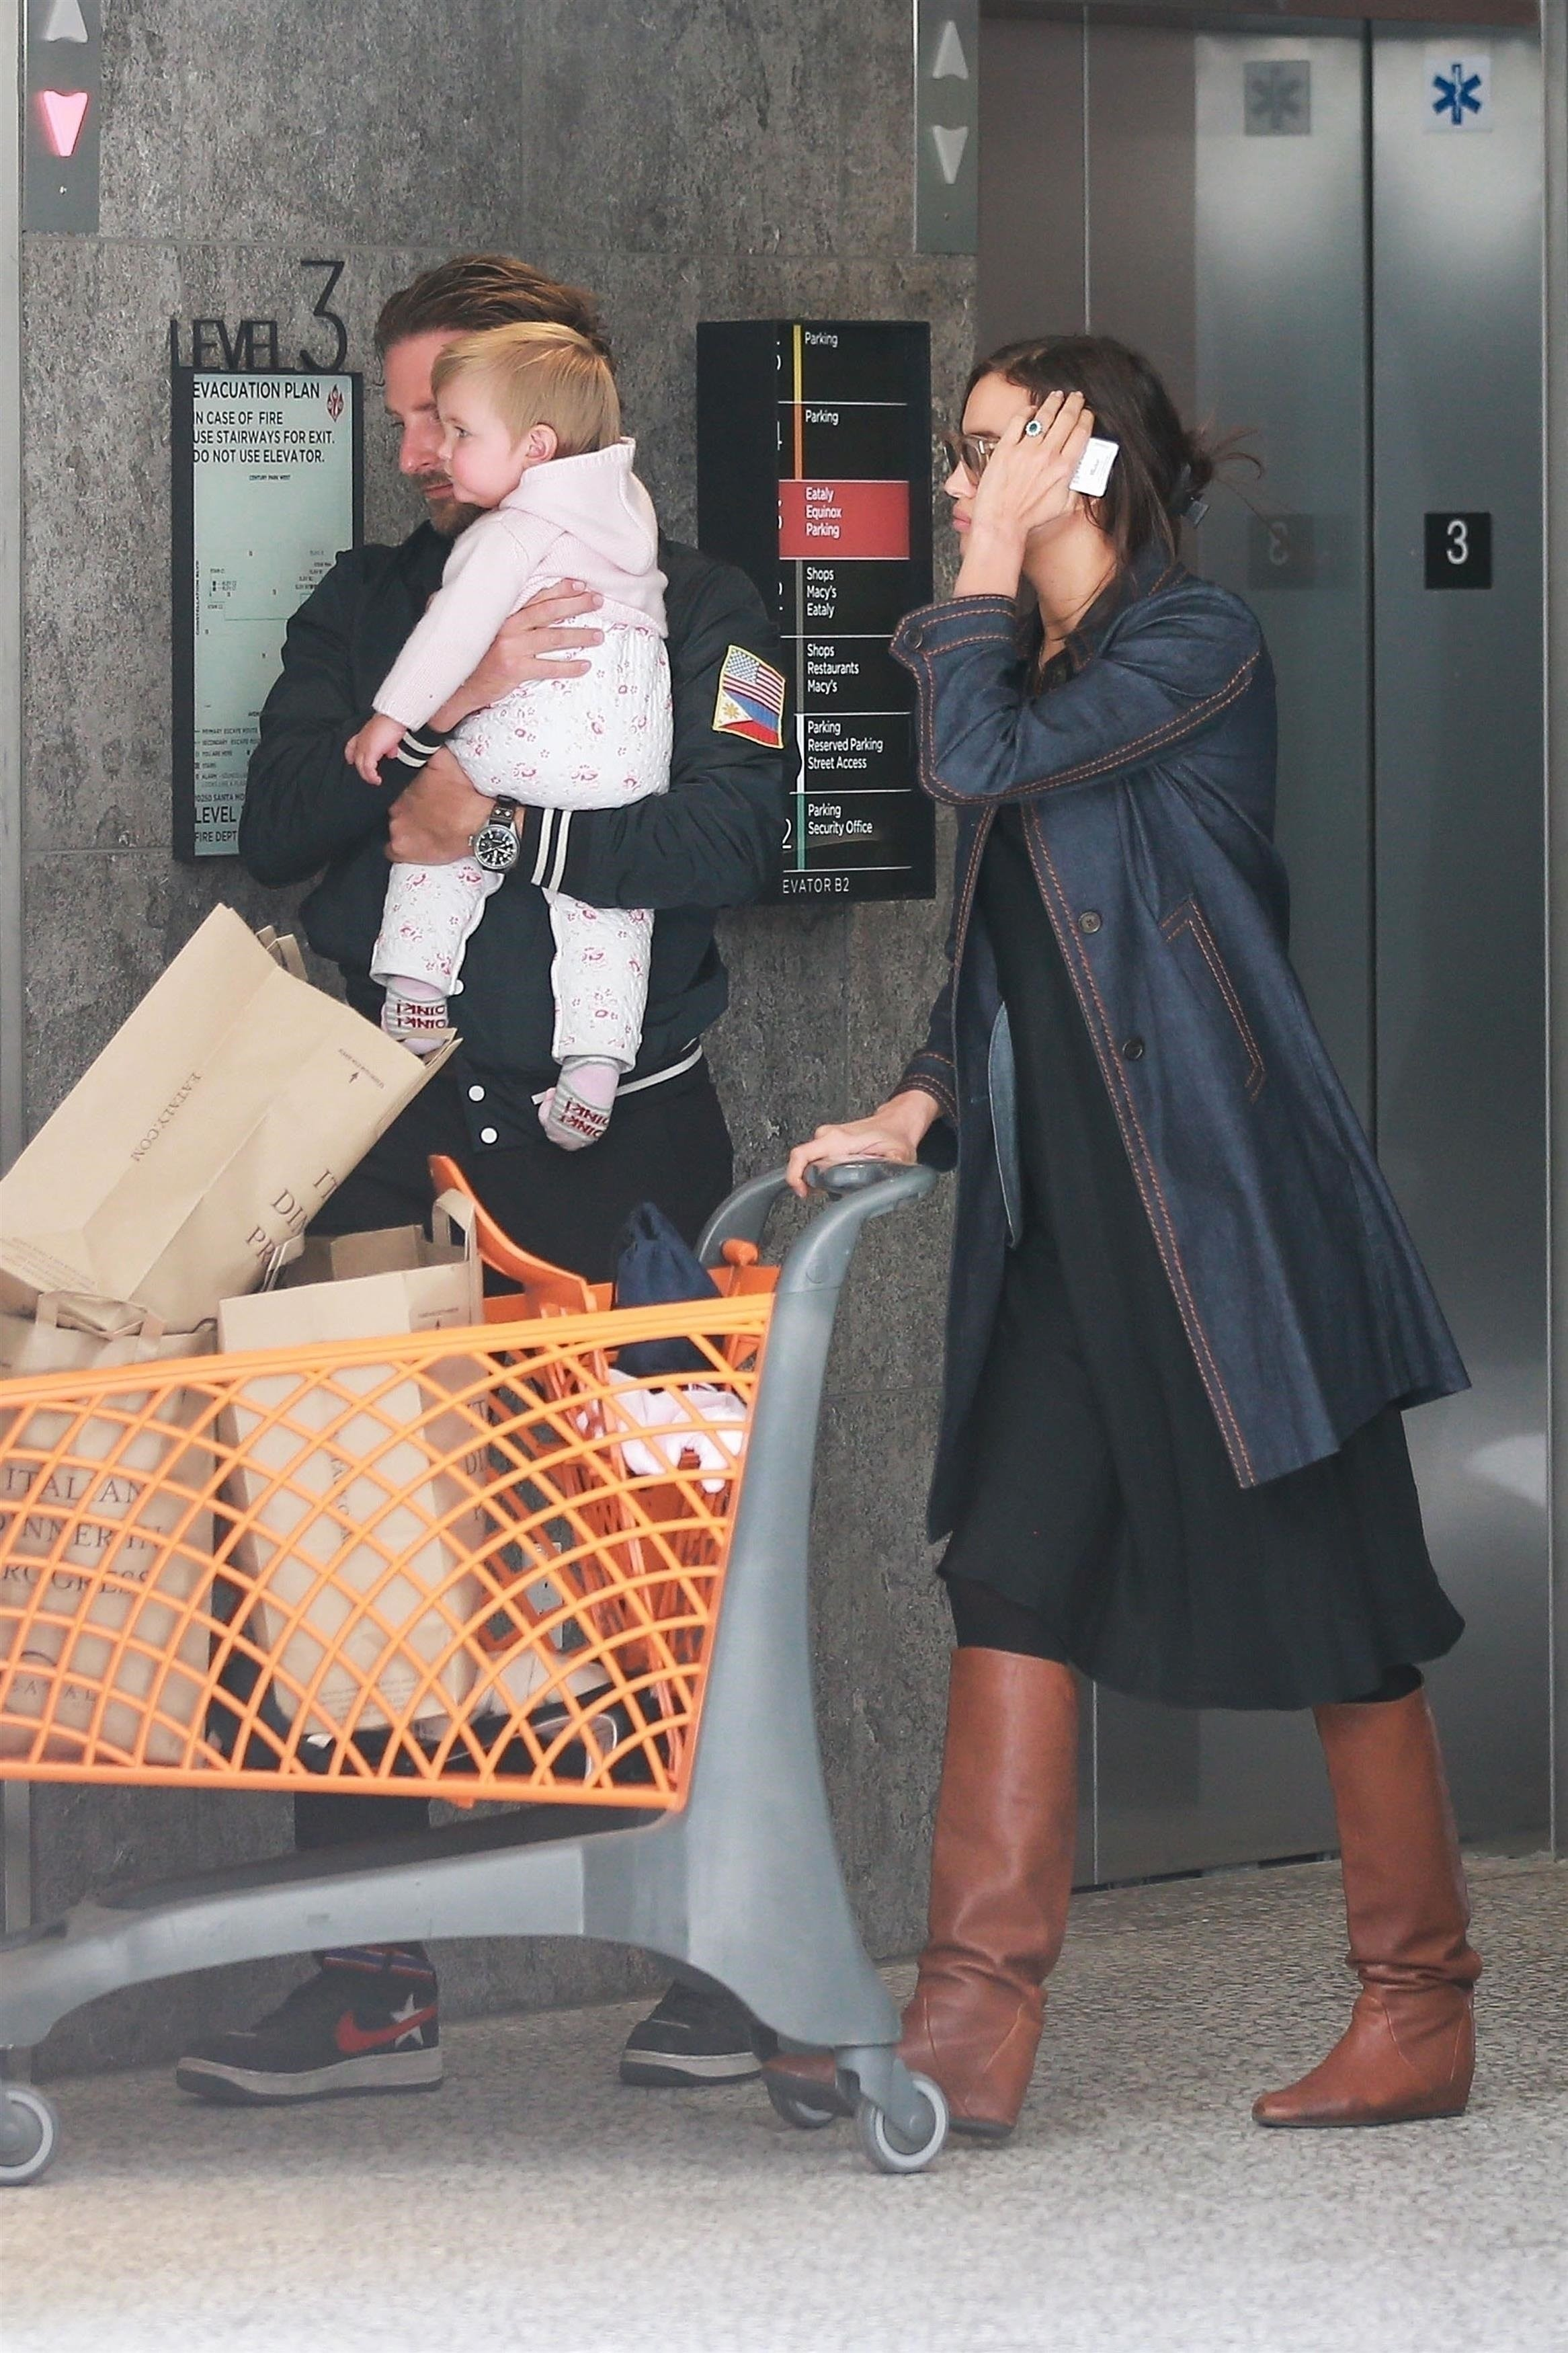 ** RIGHTS: WORLDWIDE EXCEPT IN ITALY ** Century City, CA  - *EXCLUSIVE*  - Bradley Cooper and Irina Shayk have a casual lunch with their daughter in Century City, CA. The family are seen heading to their car after grabbing some groceries.  Pictured: Lea De Seine Shayk Cooper, Bradley Cooper, Irina Shayk    *UK Clients - Pictures Containing Children Please Pixelate Face Prior To Publication*, Image: 364065763, License: Rights-managed, Restrictions: , Model Release: no, Credit line: Profimedia, AKM-GSI